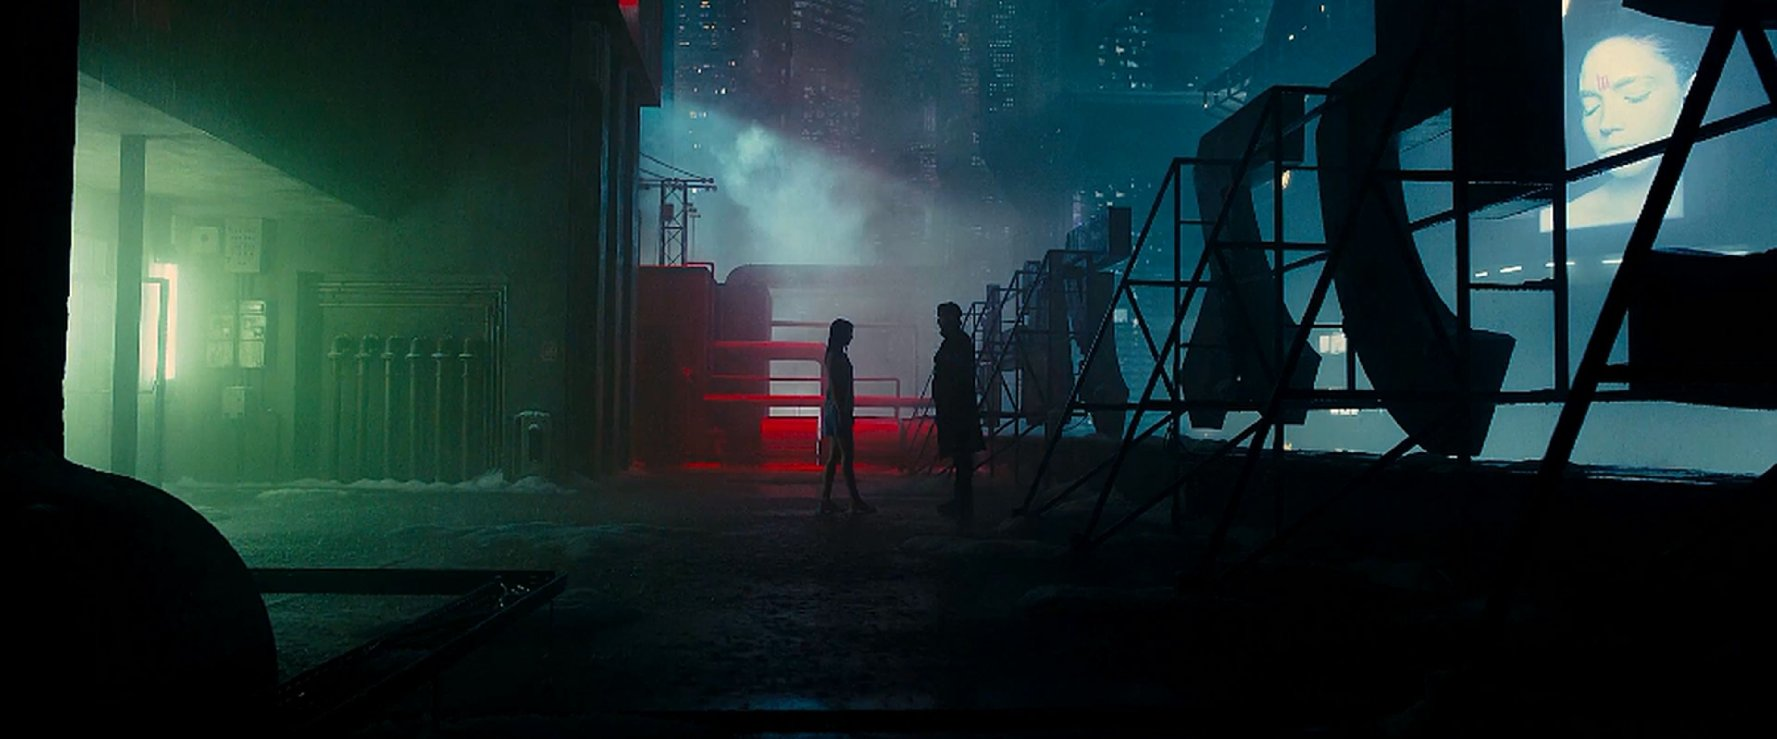 https://cinemaplanet.pt/wp-content/uploads/2017/07/blade-runner.jpg